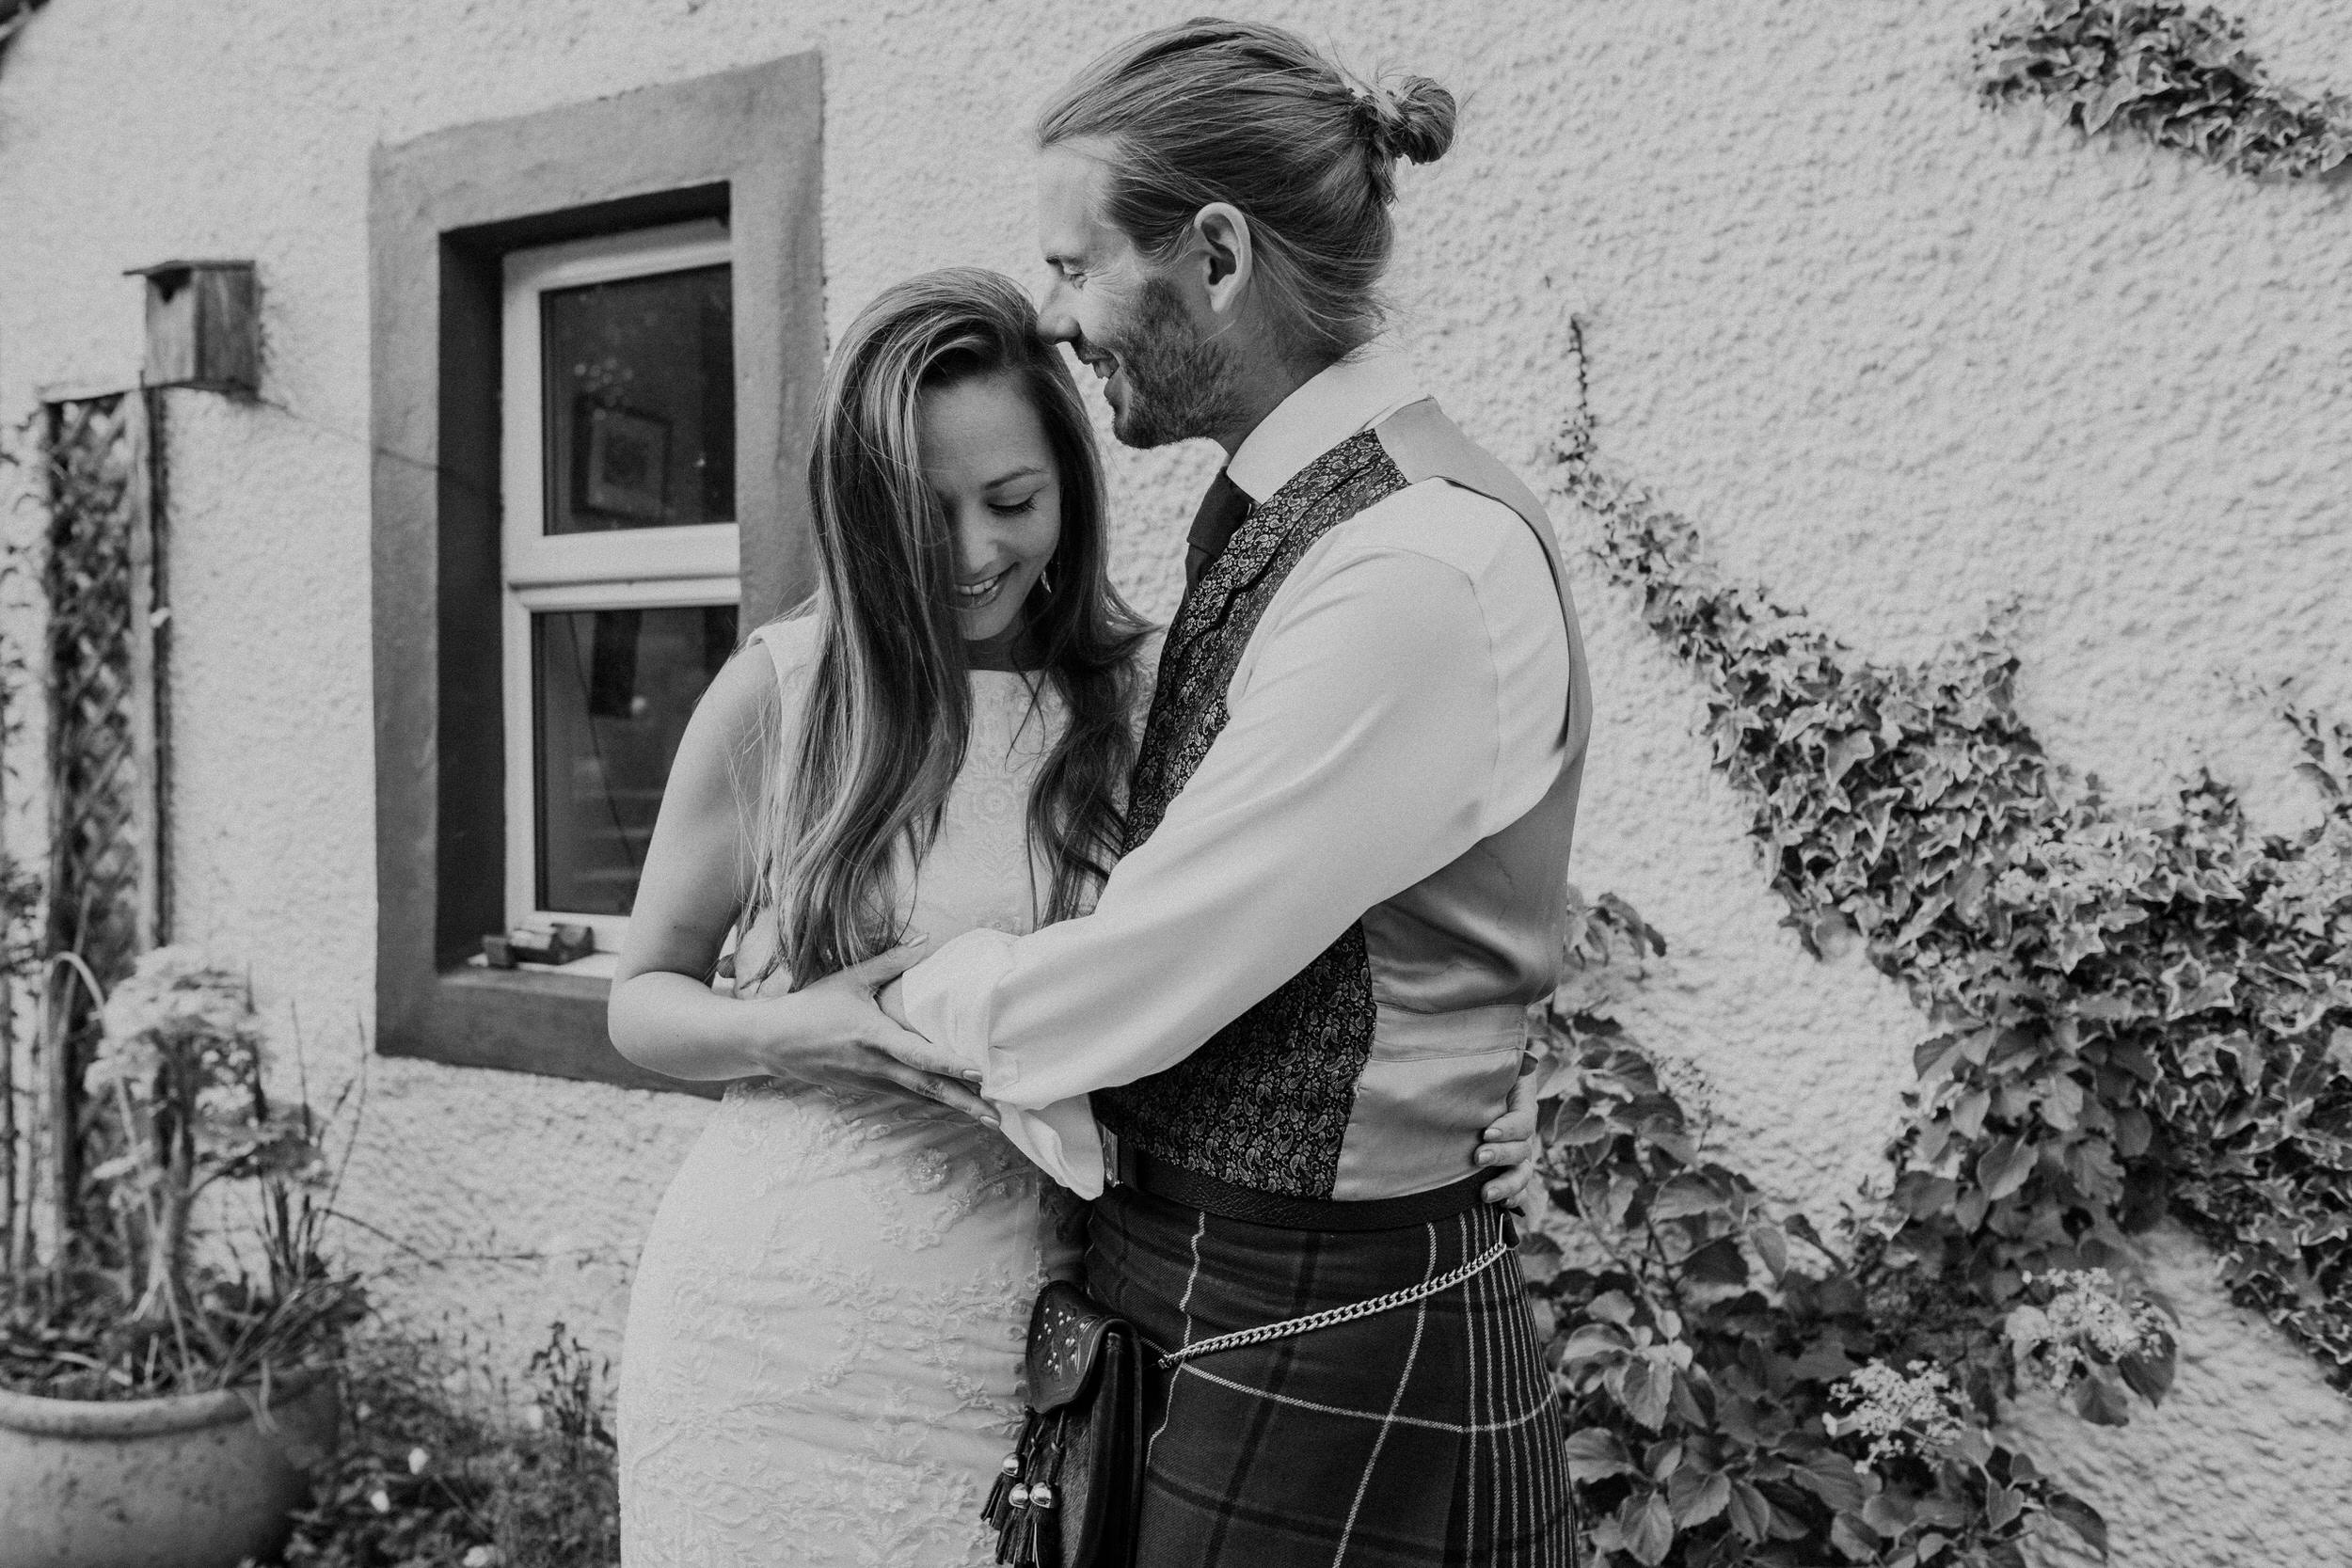 Alternative Quirky Wedding Photographer Scotland Borders Edinburgh 138.jpg